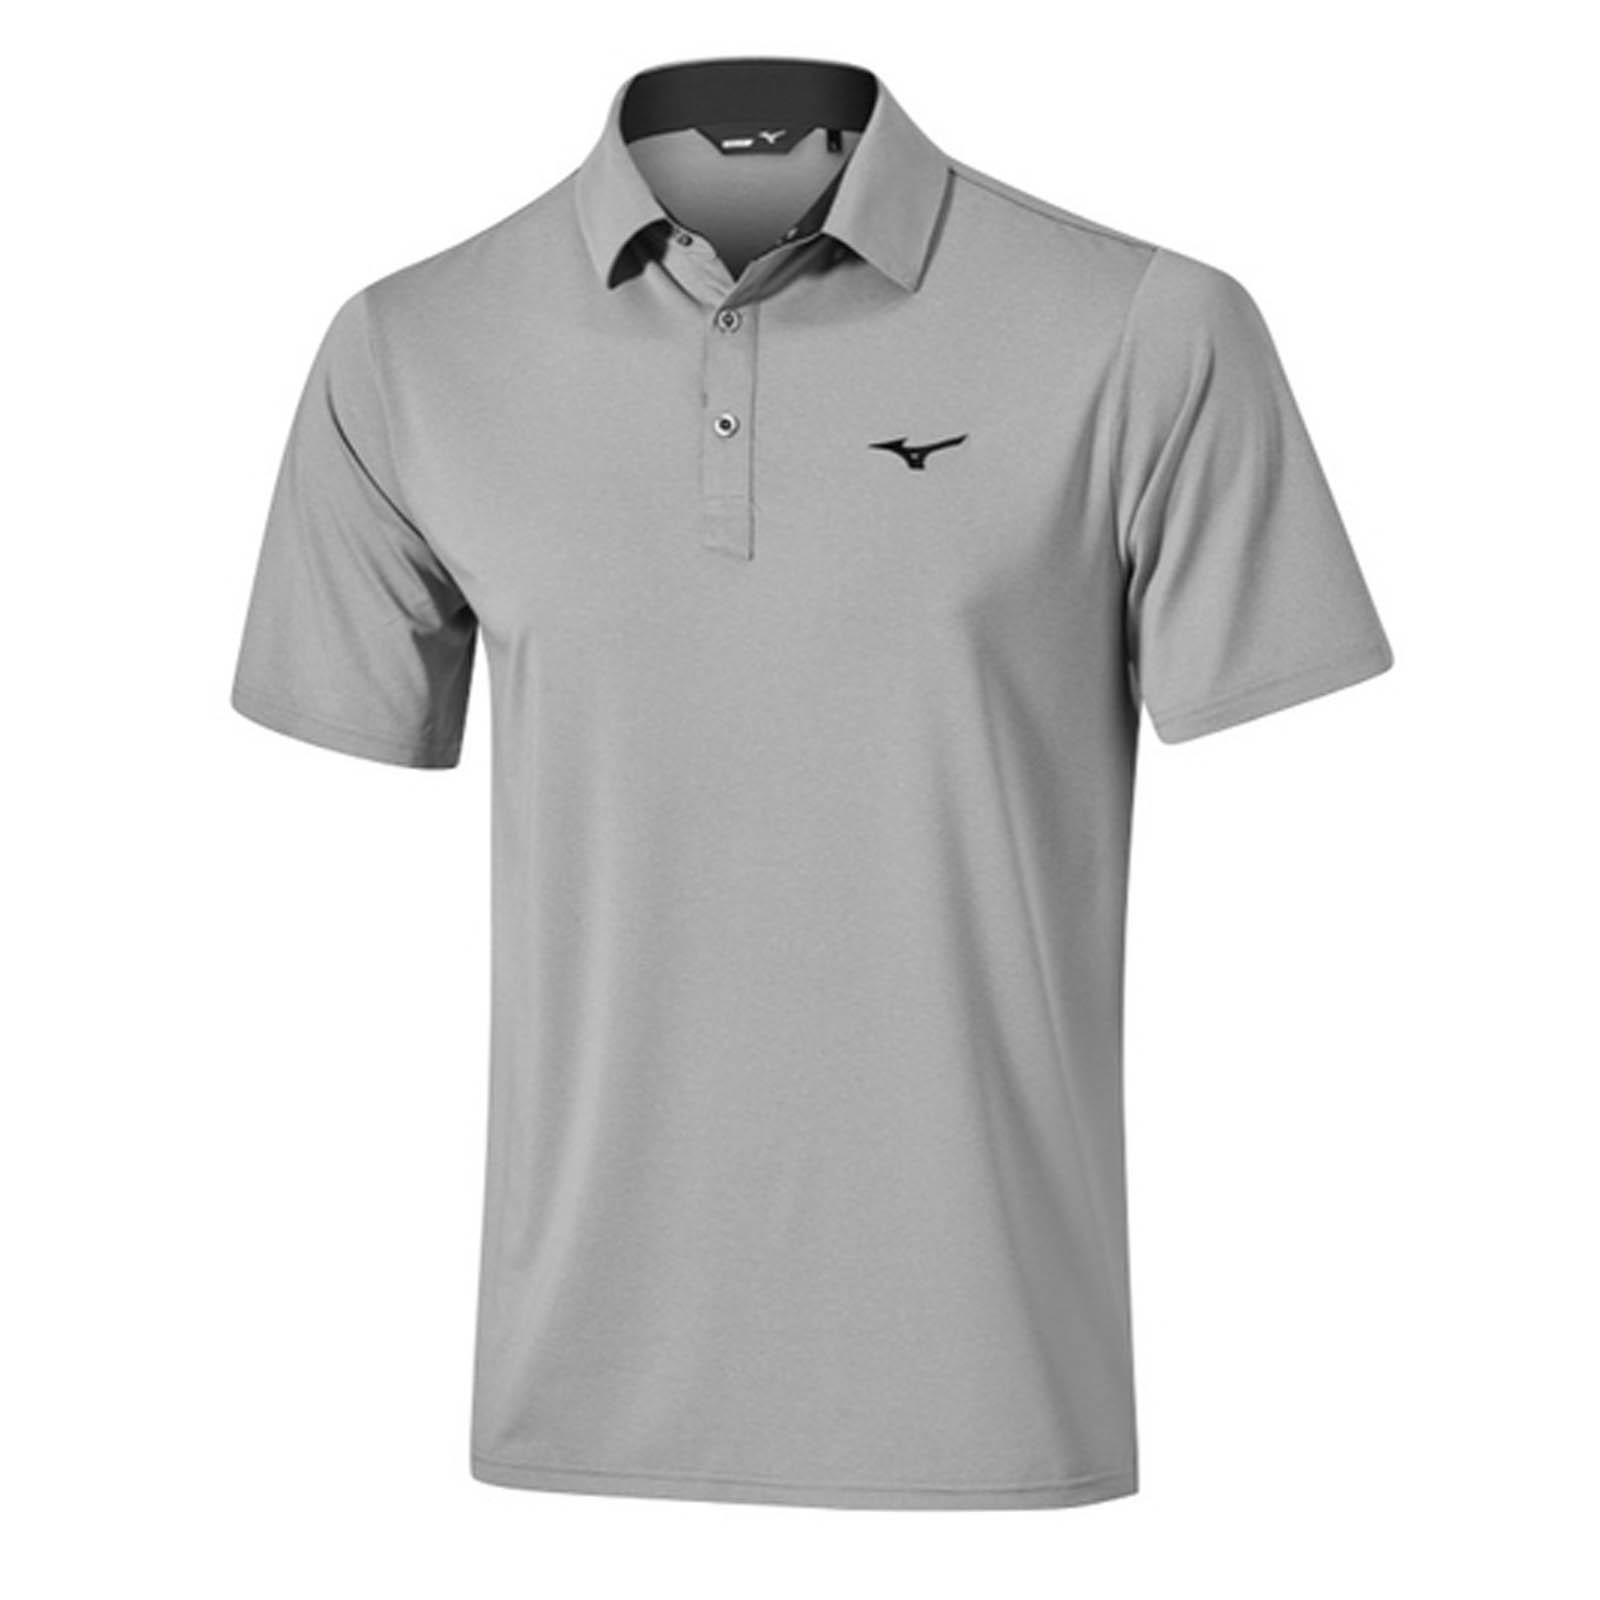 Mizuno Plain Polo Shirts